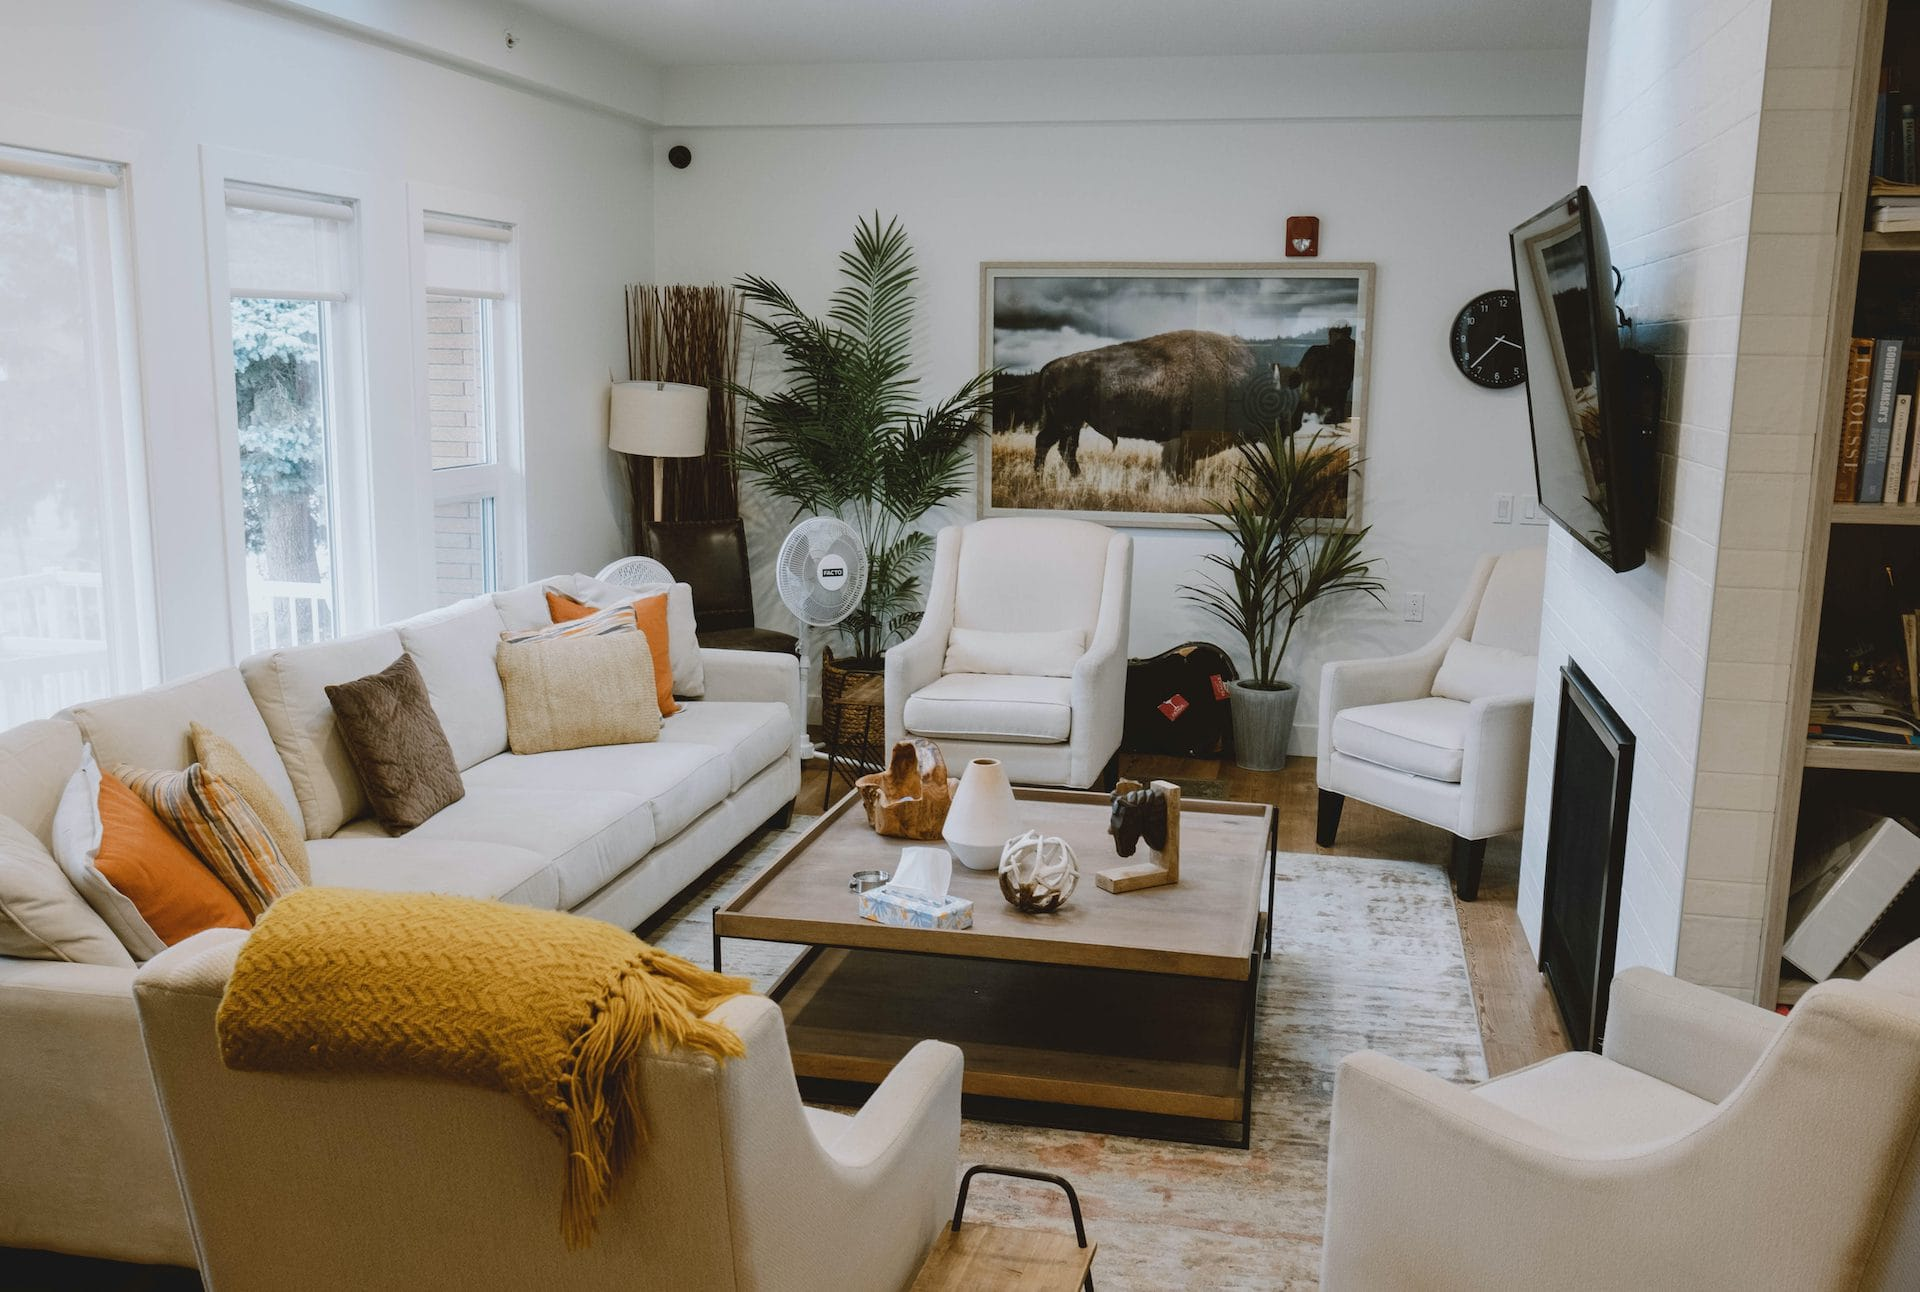 Lounge area with couches and coffee table